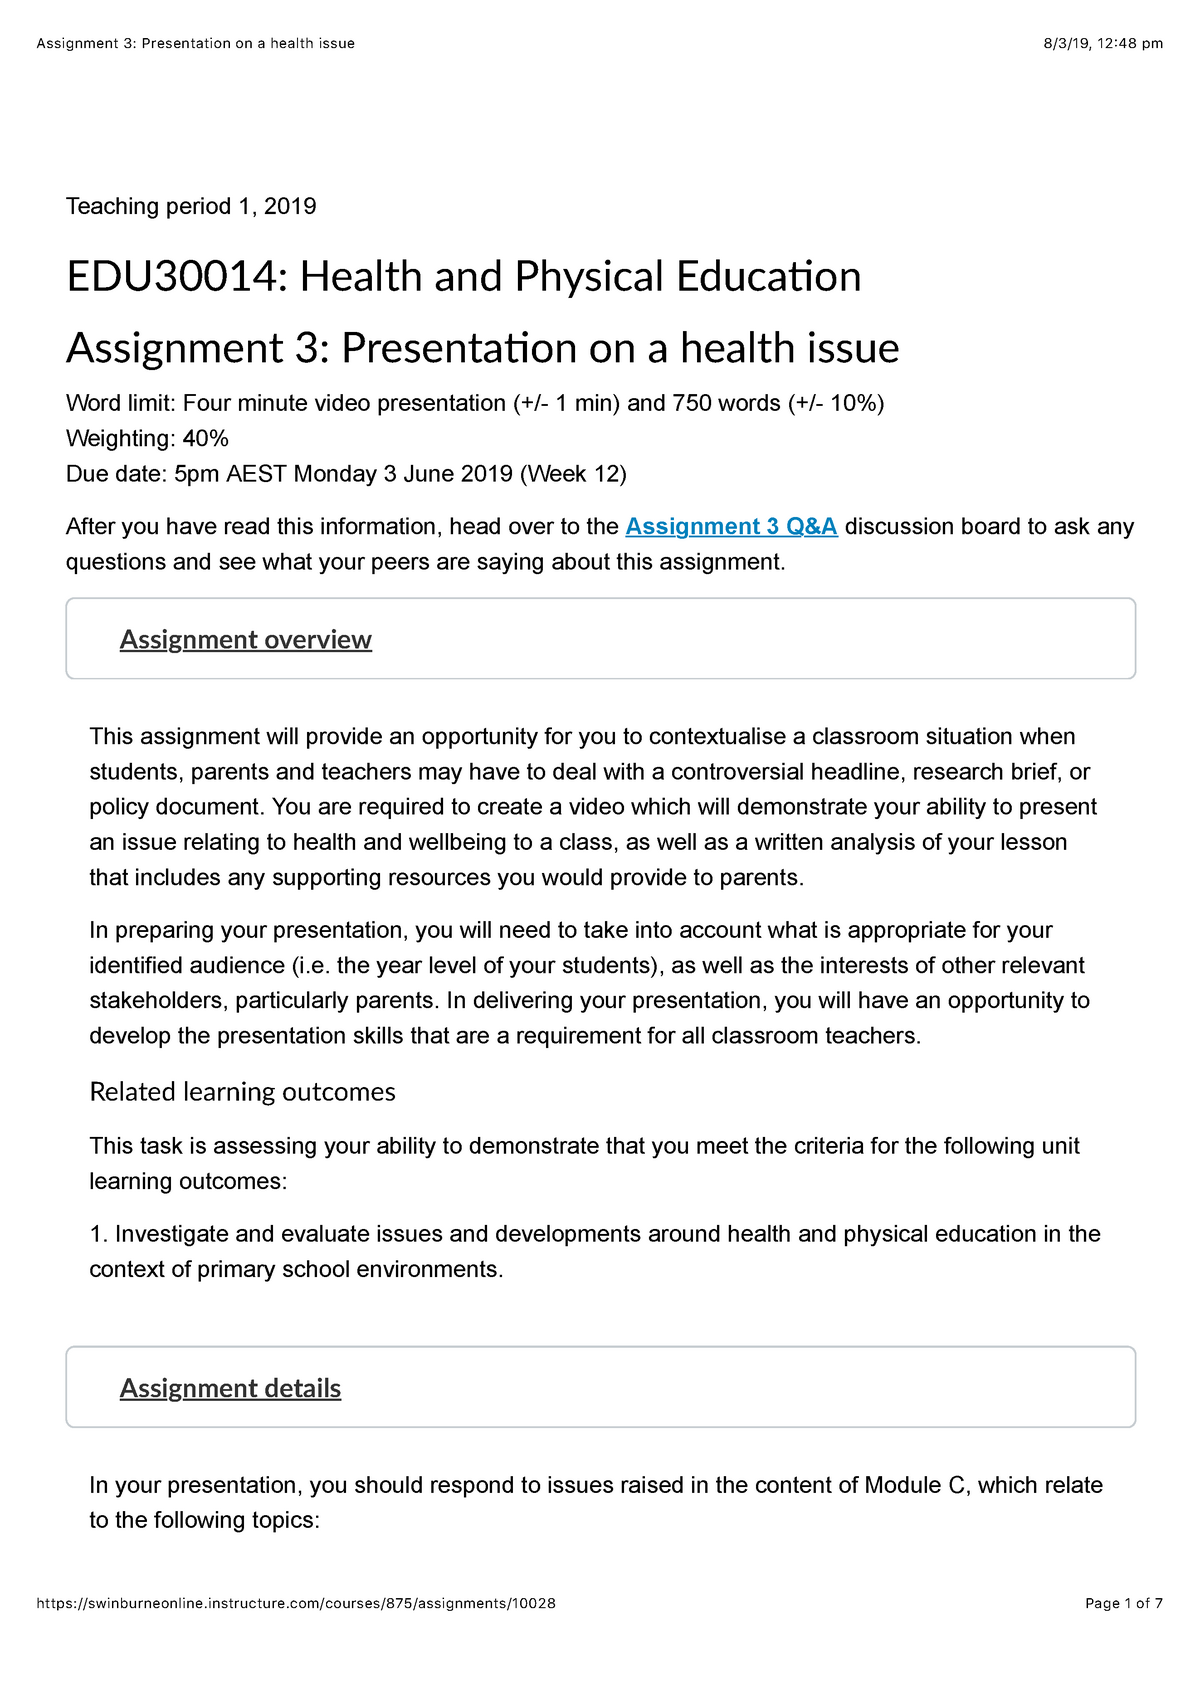 Assignment 3: Presentation on a health issue - EDU30014: Health and